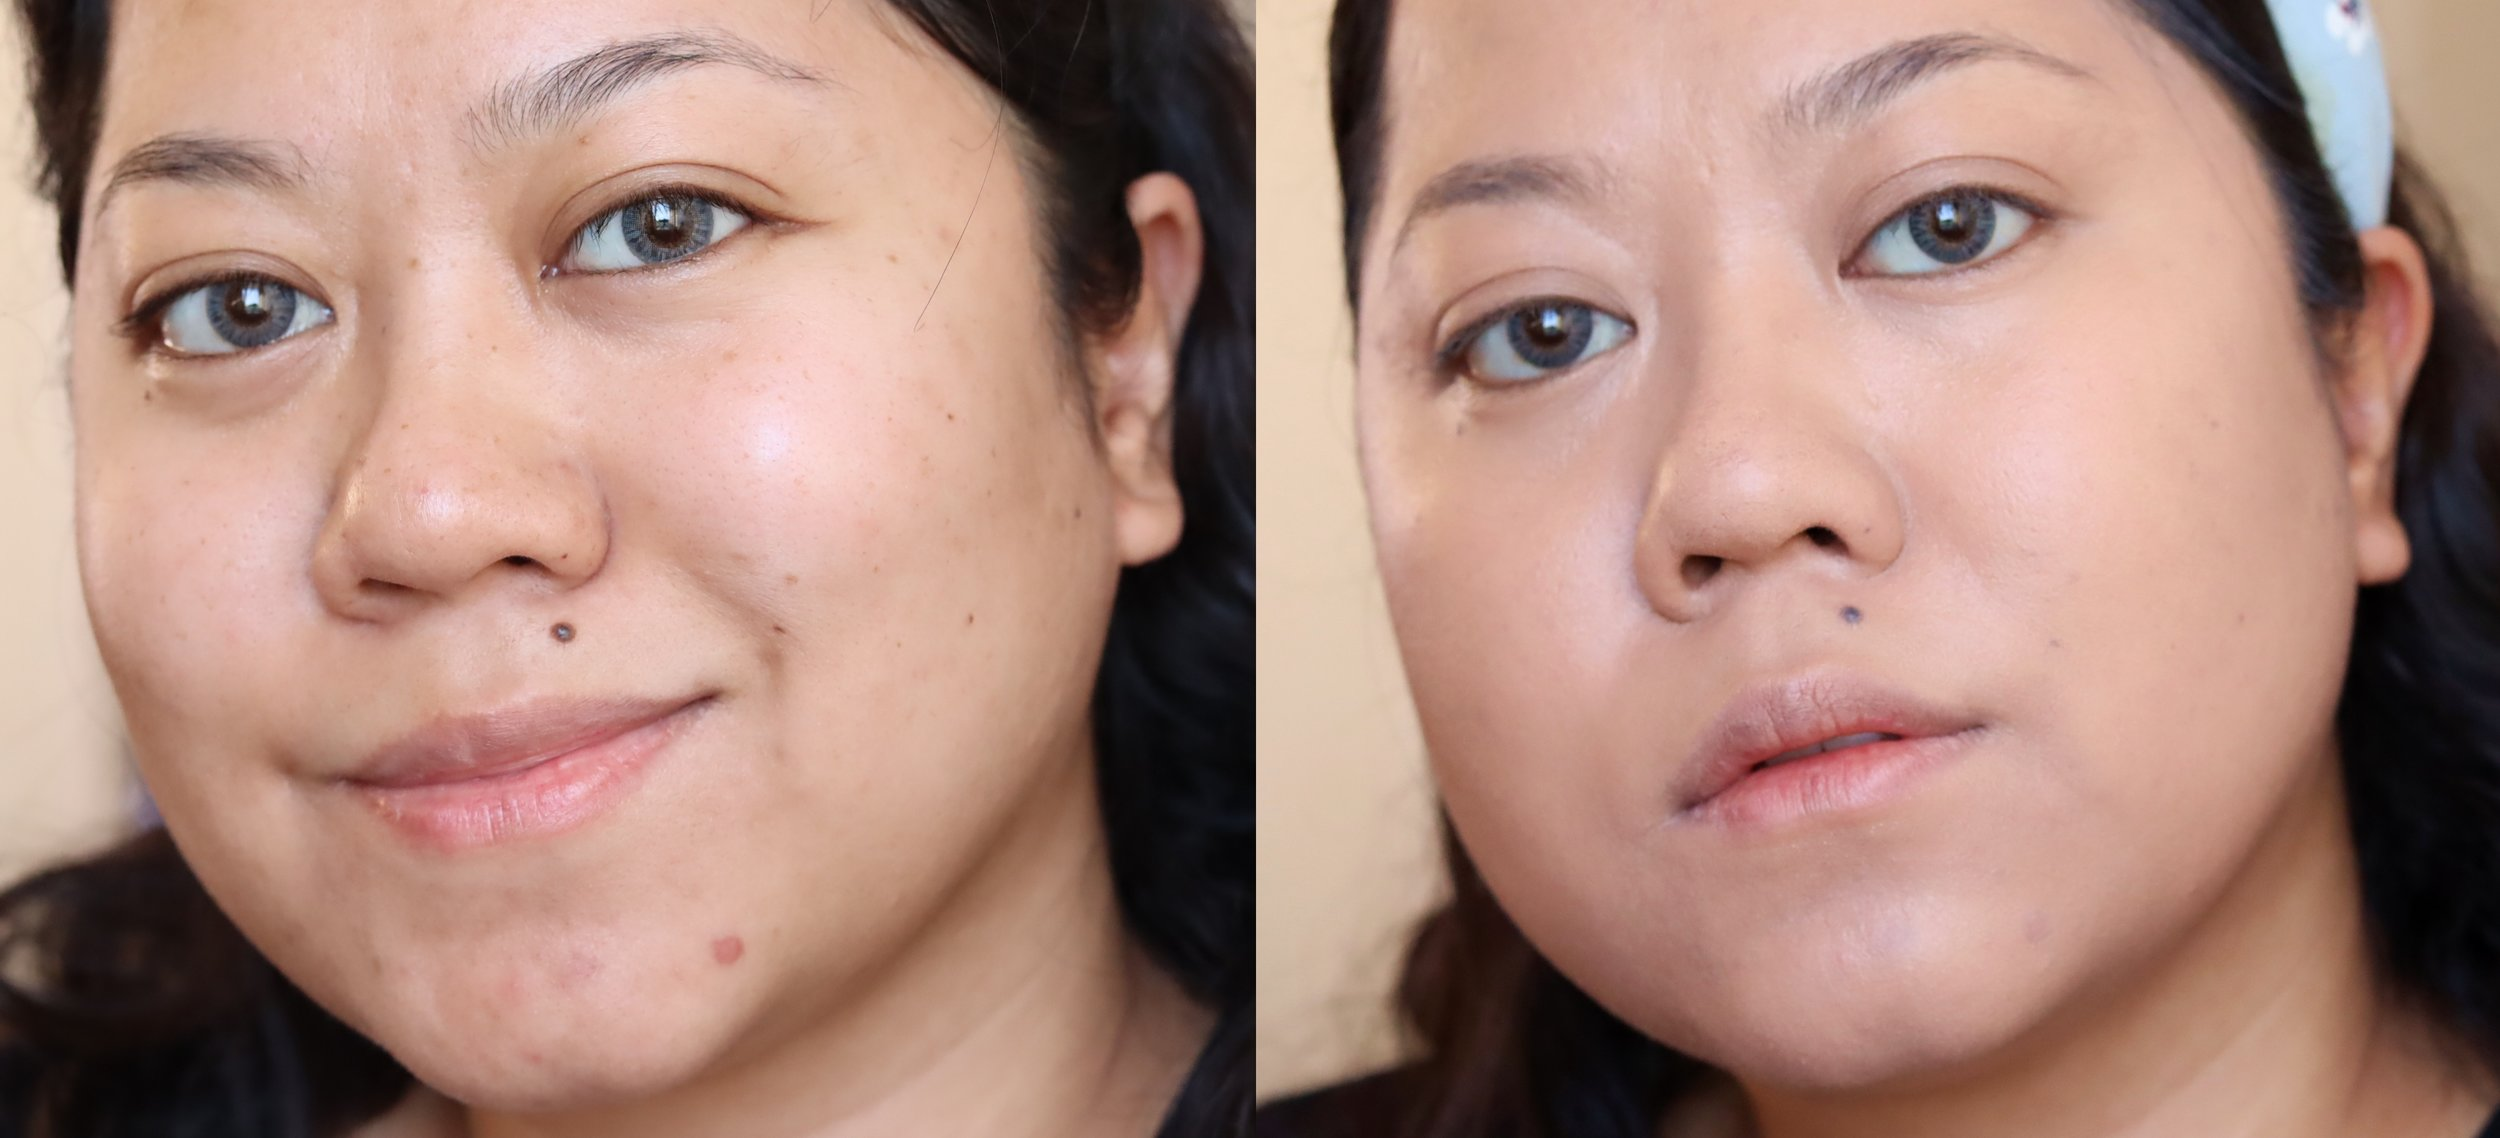 Left is my bare face, right is with one layer of the Revlon Full Cover. Look at how nice the finish and coverage is! I didn't use a concealer here.